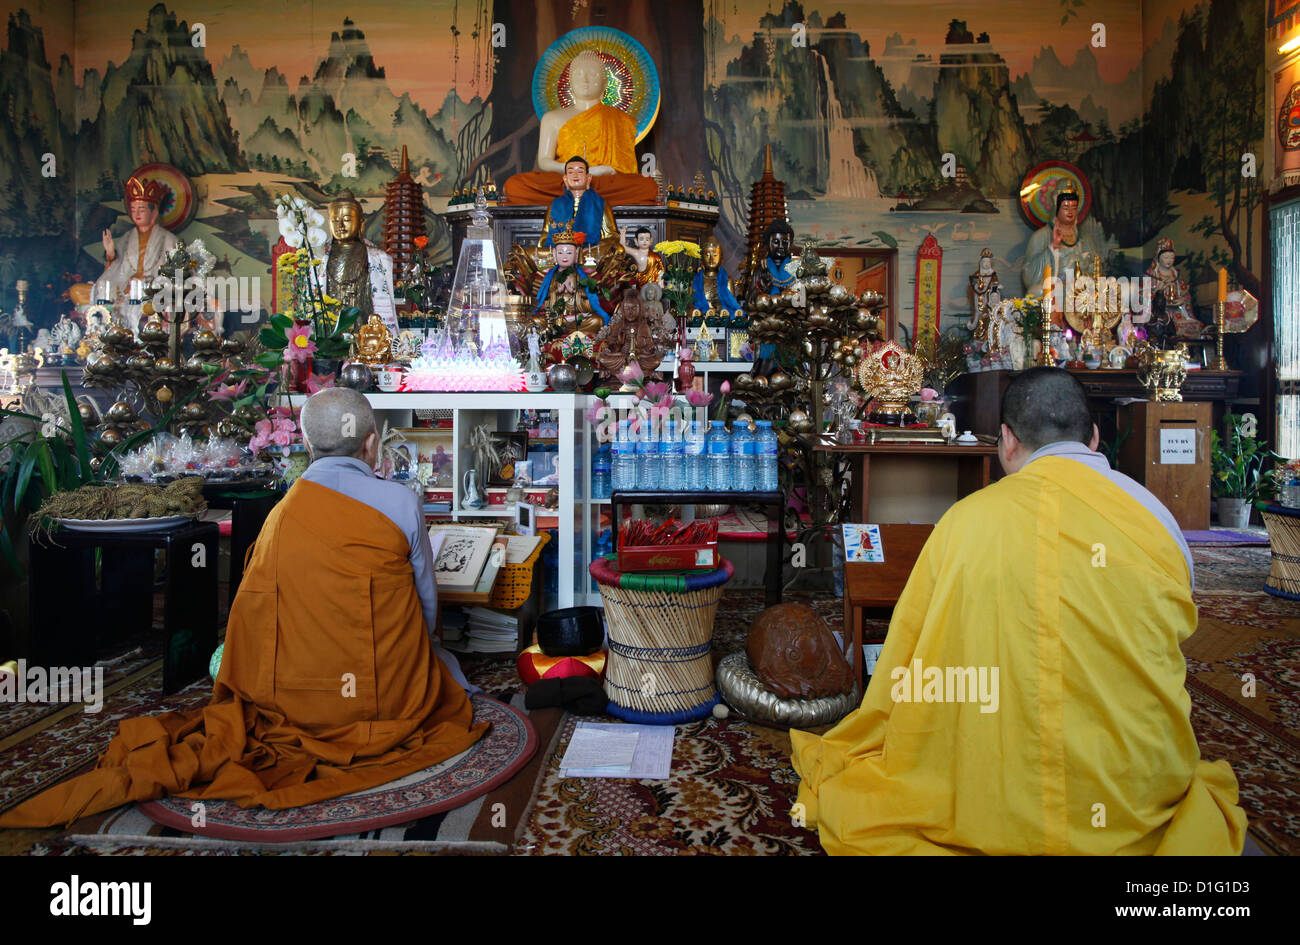 Buddhist ceremony, Tu An Buddhist temple, Saint-Pierre-en-Faucigny, Haute Savoie, France, Europe - Stock Image